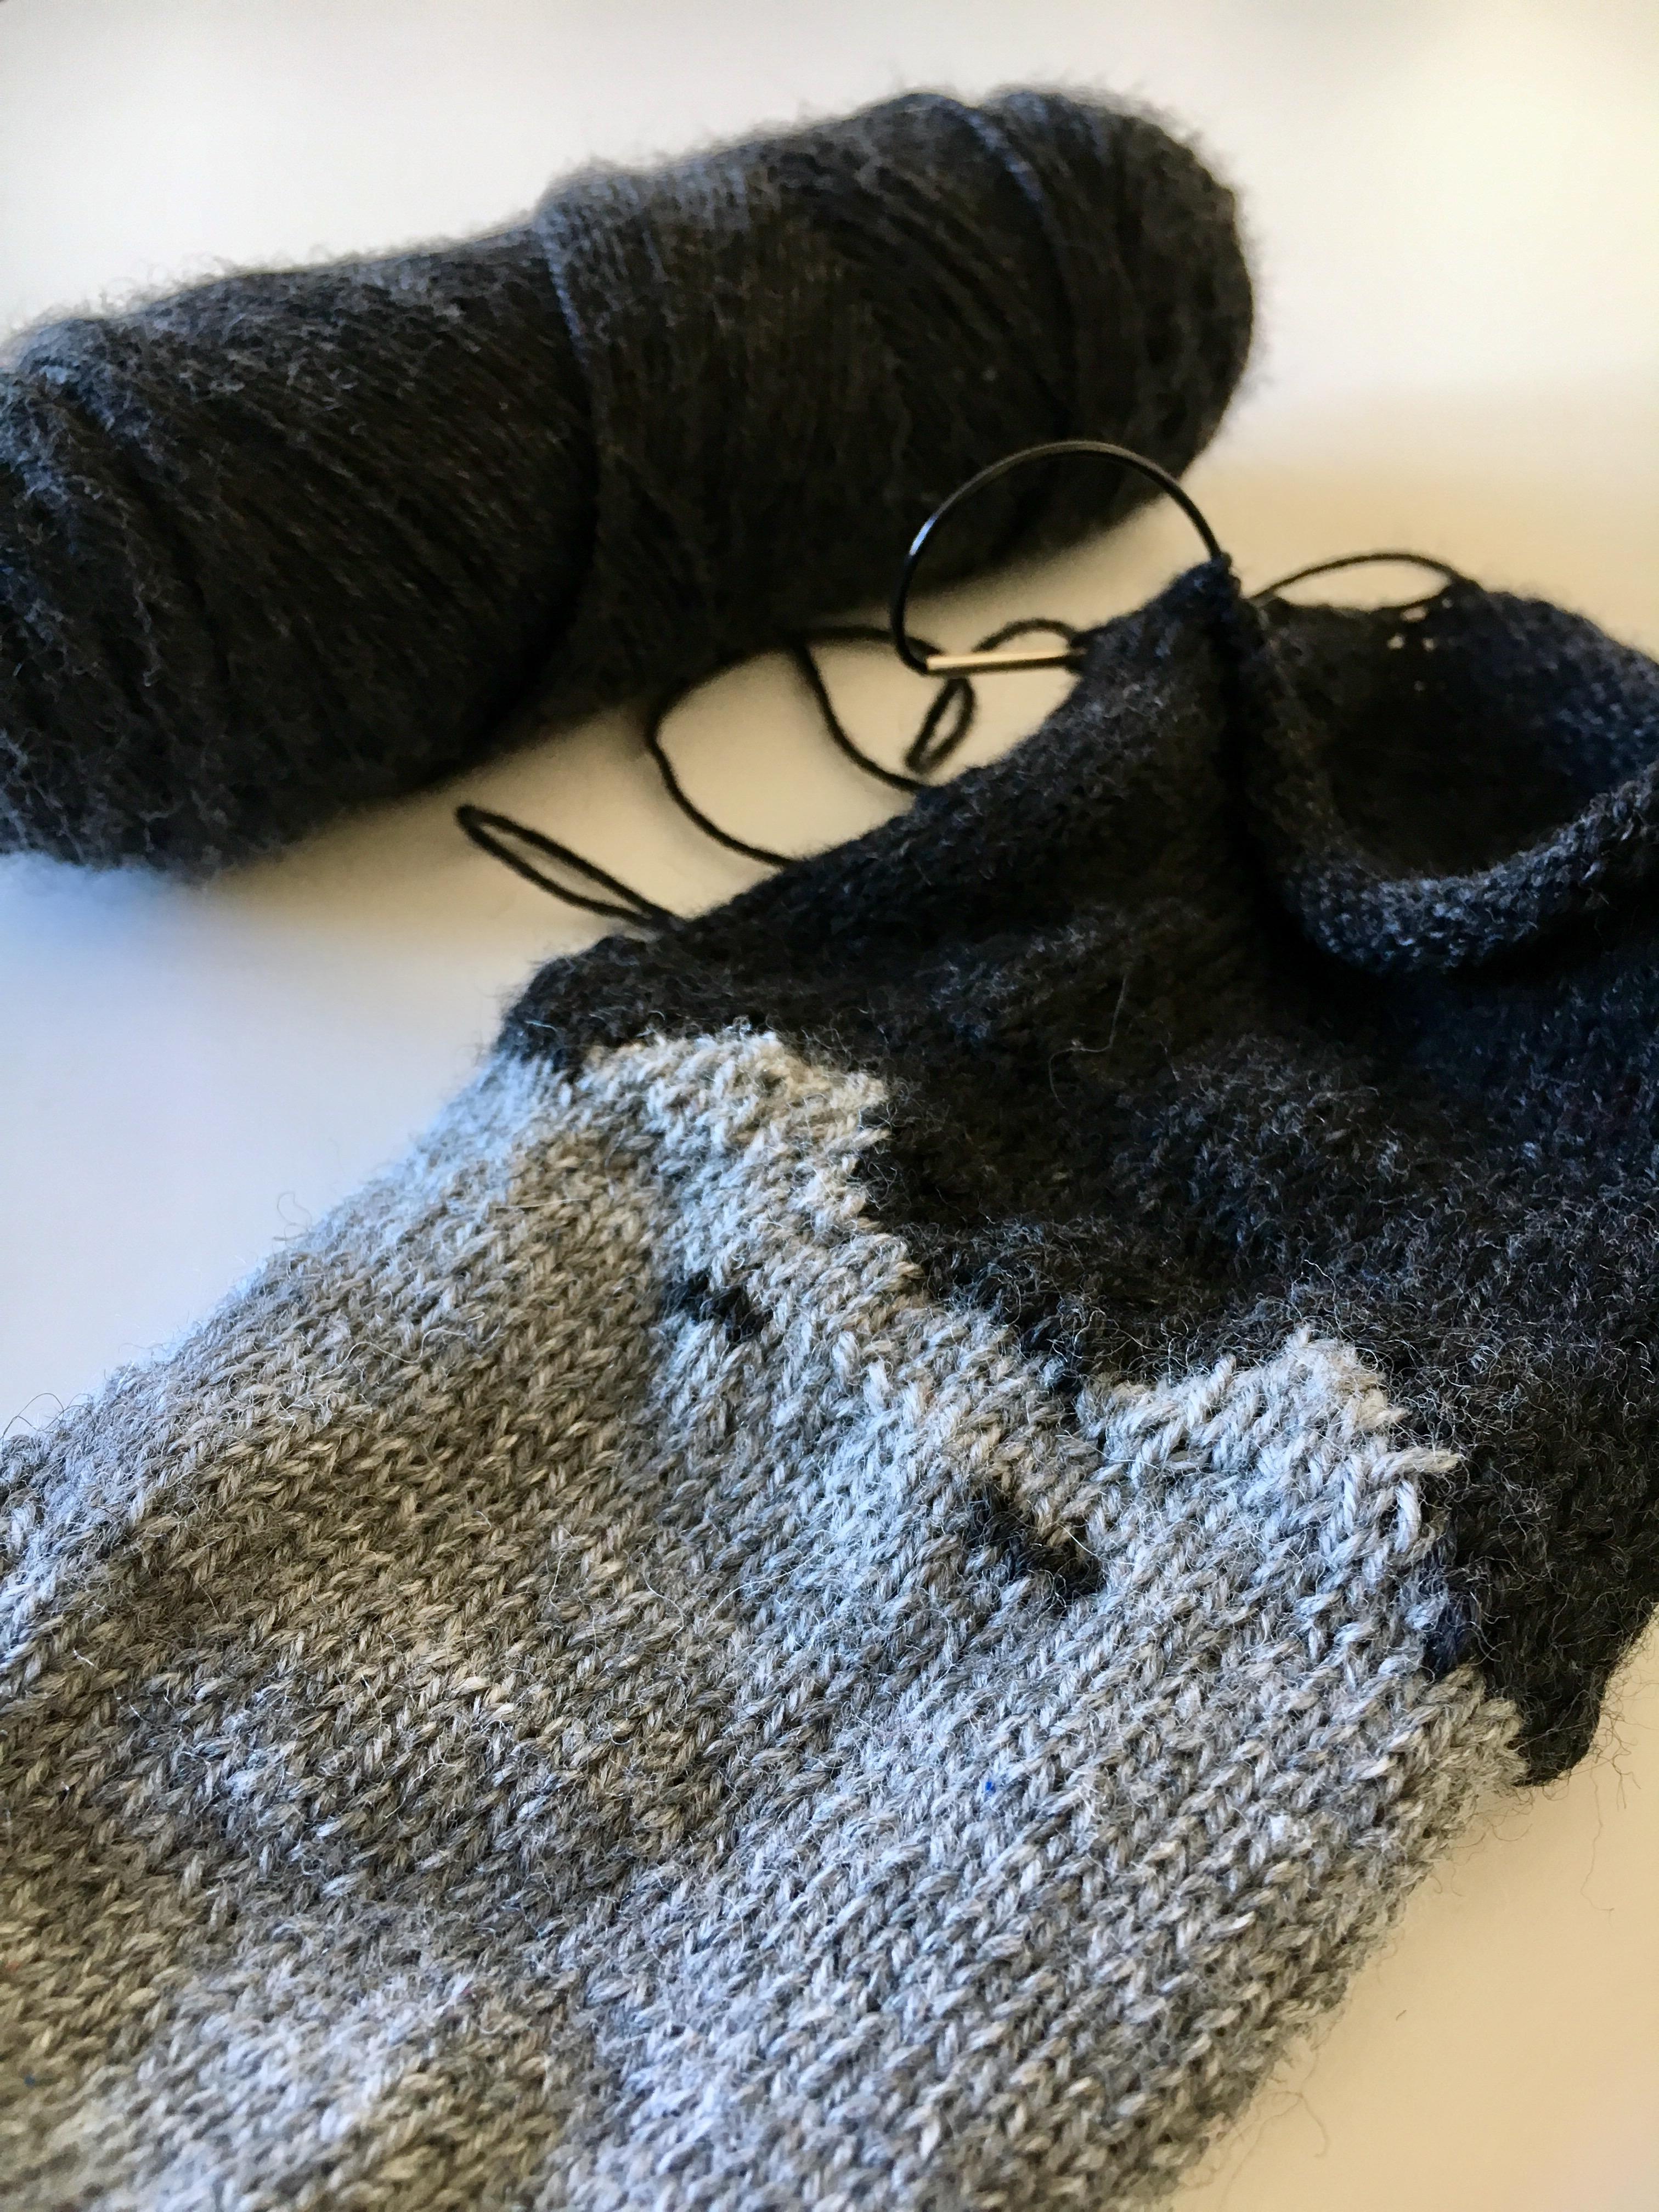 Kind of loose ears on my knitted cat socks